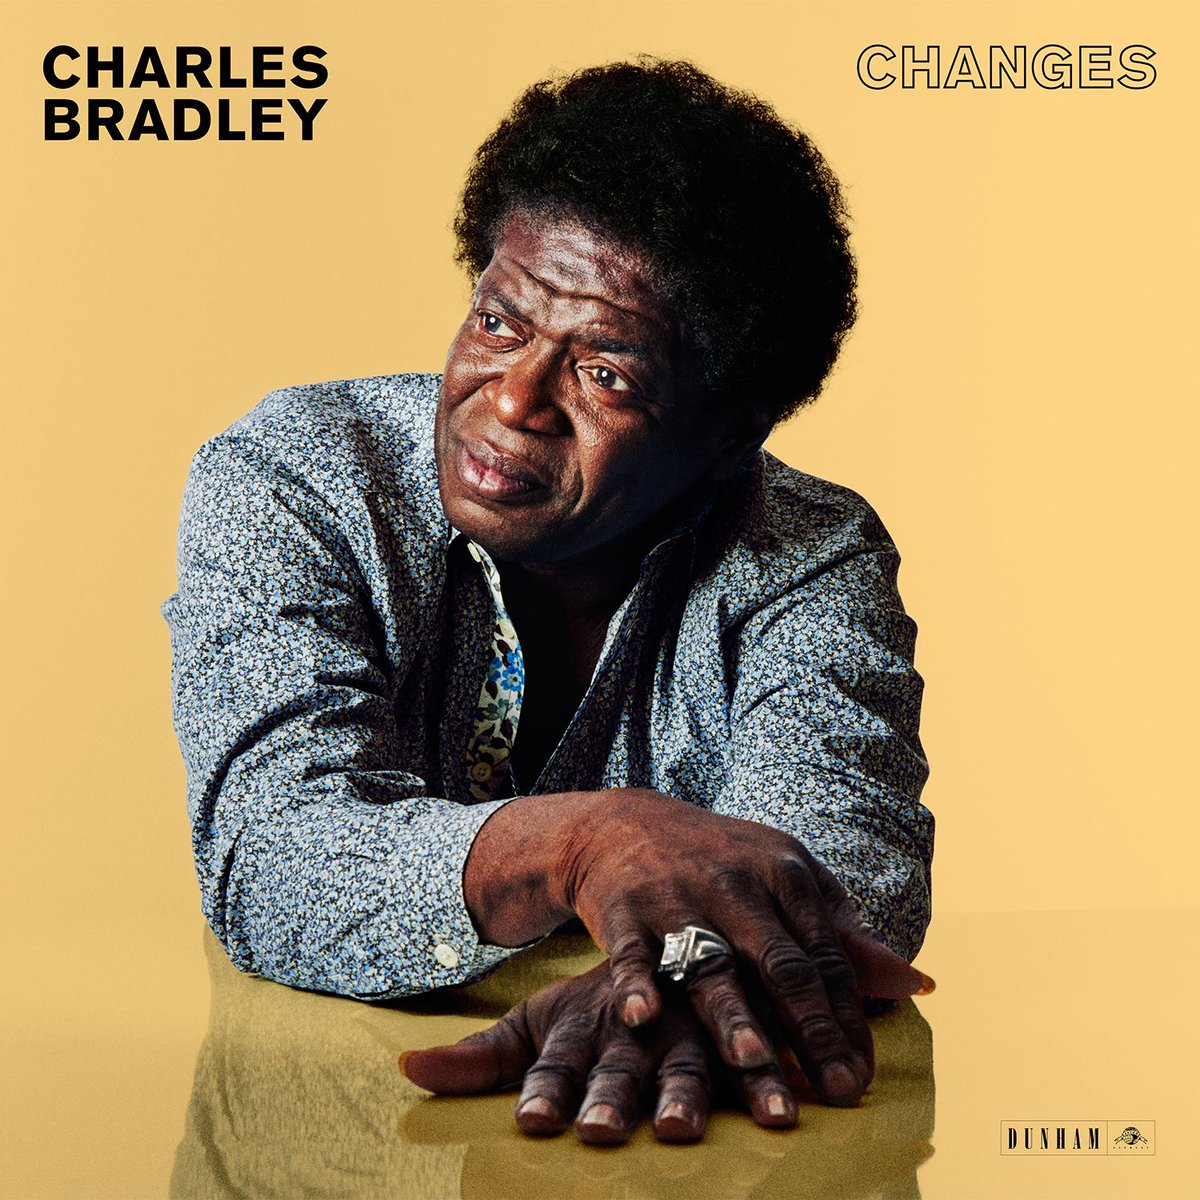 Changes is out April 1st! https://t.co/HTmaqTWspW. RT to win an autographed test pressing #charlesforchange https://t.co/IpMGl4XOjY